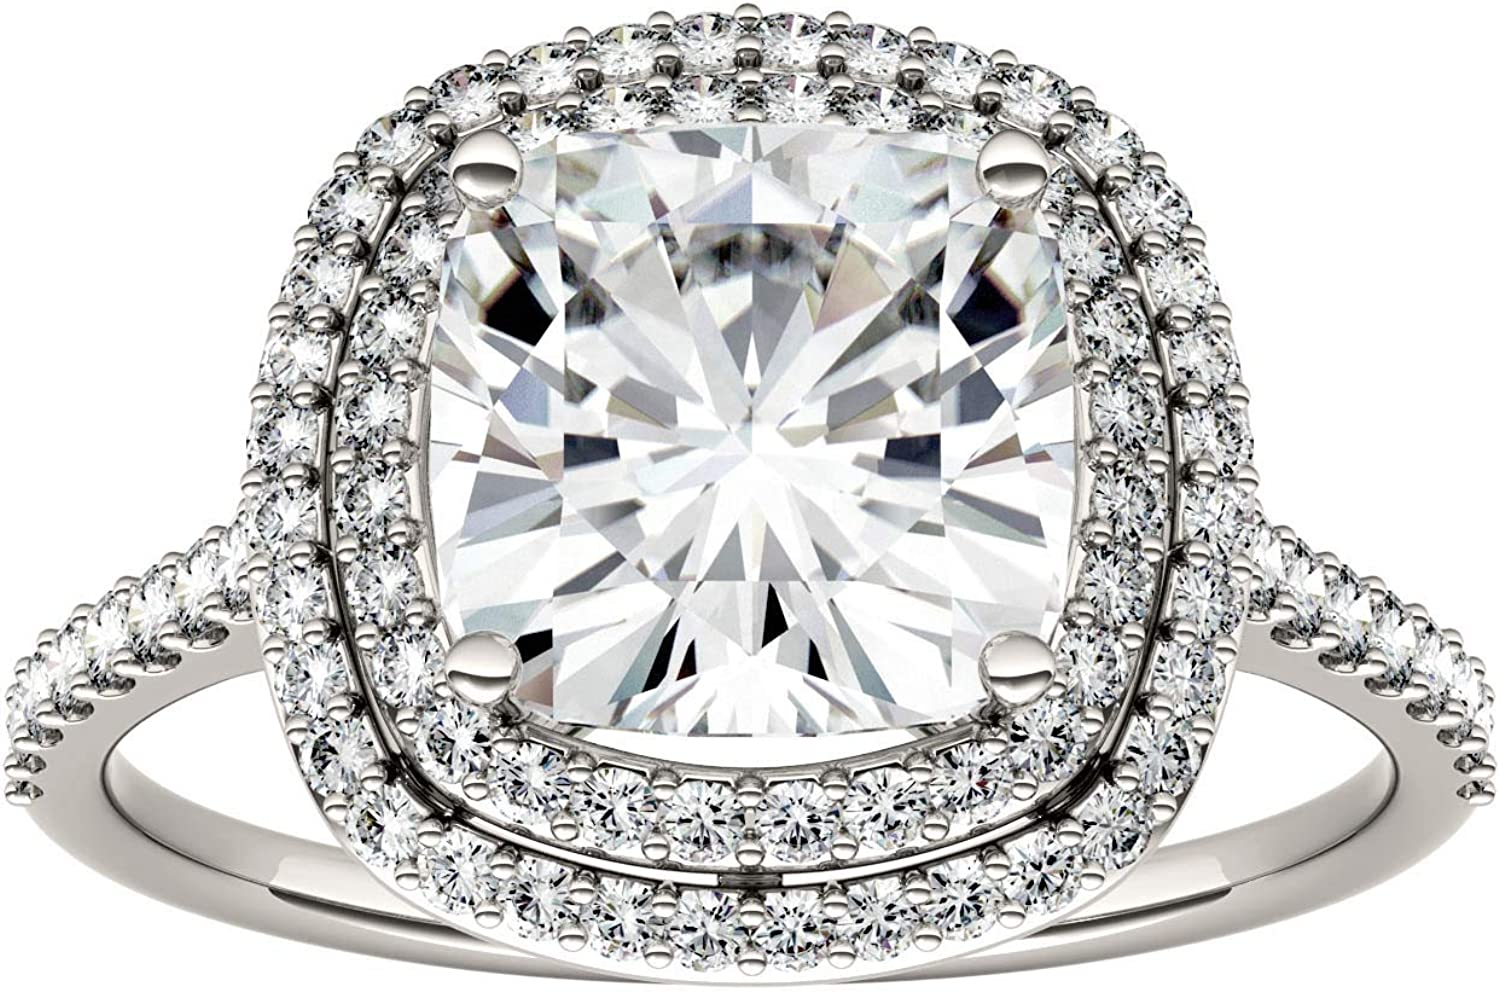 Gold Moissanite by Charles & Colvard 8.0mm Cushion Halo Engagement Ring, 2.90cttw DEW